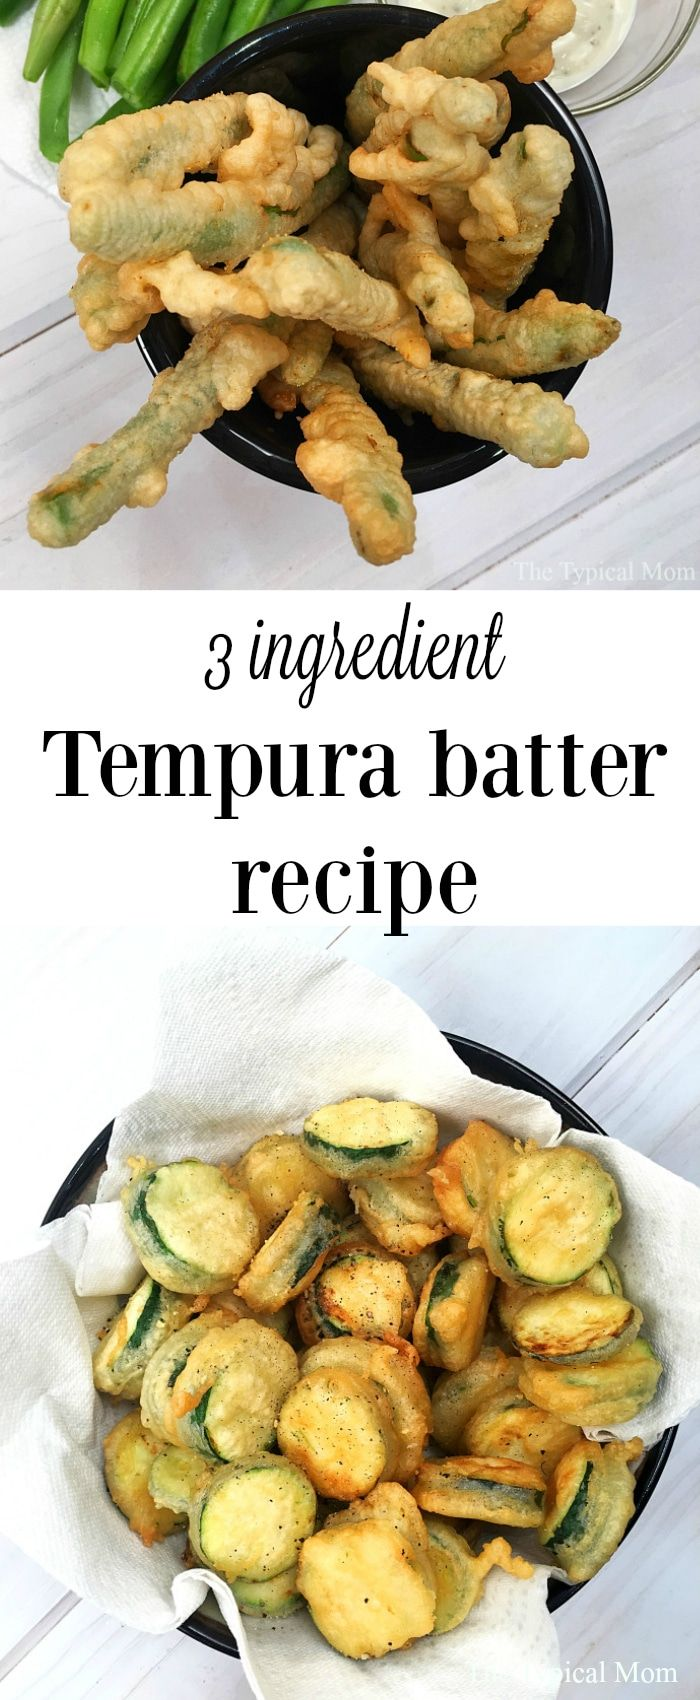 Recipe for tempura batter that just takes 3 ingredients! Make shrimp tempura, fried green beans, and vegetables at home. Great way to make a side dish! via @thetypicalmom